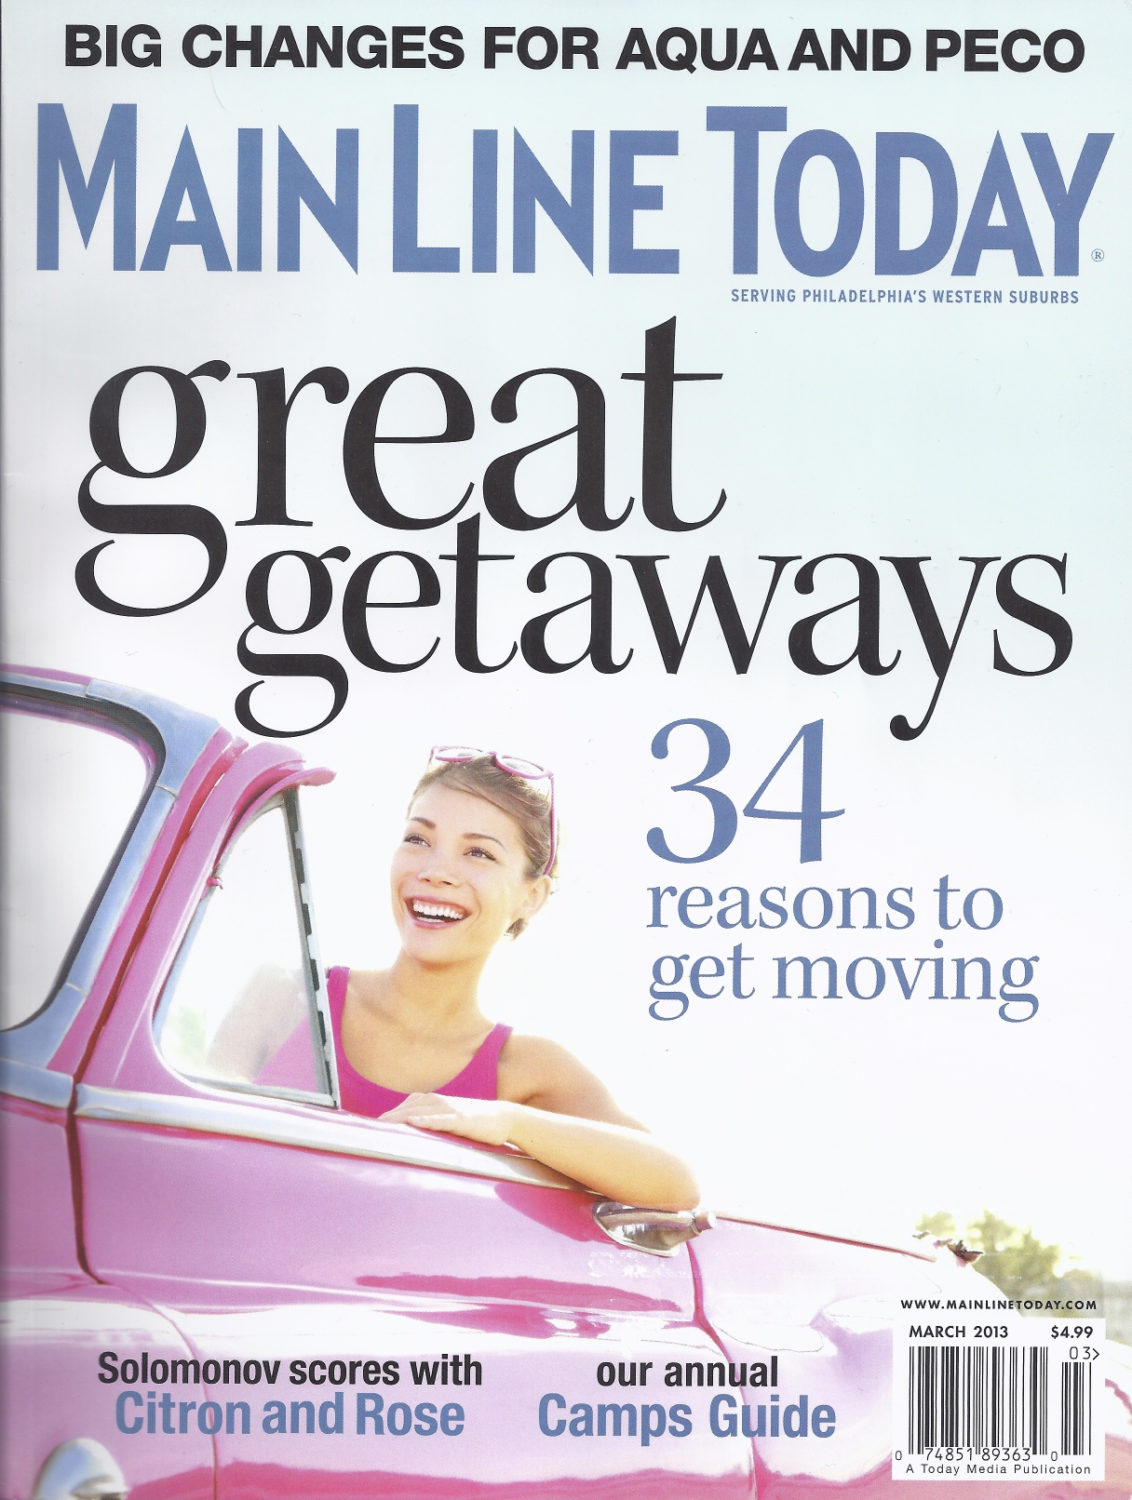 Main Line Today cover